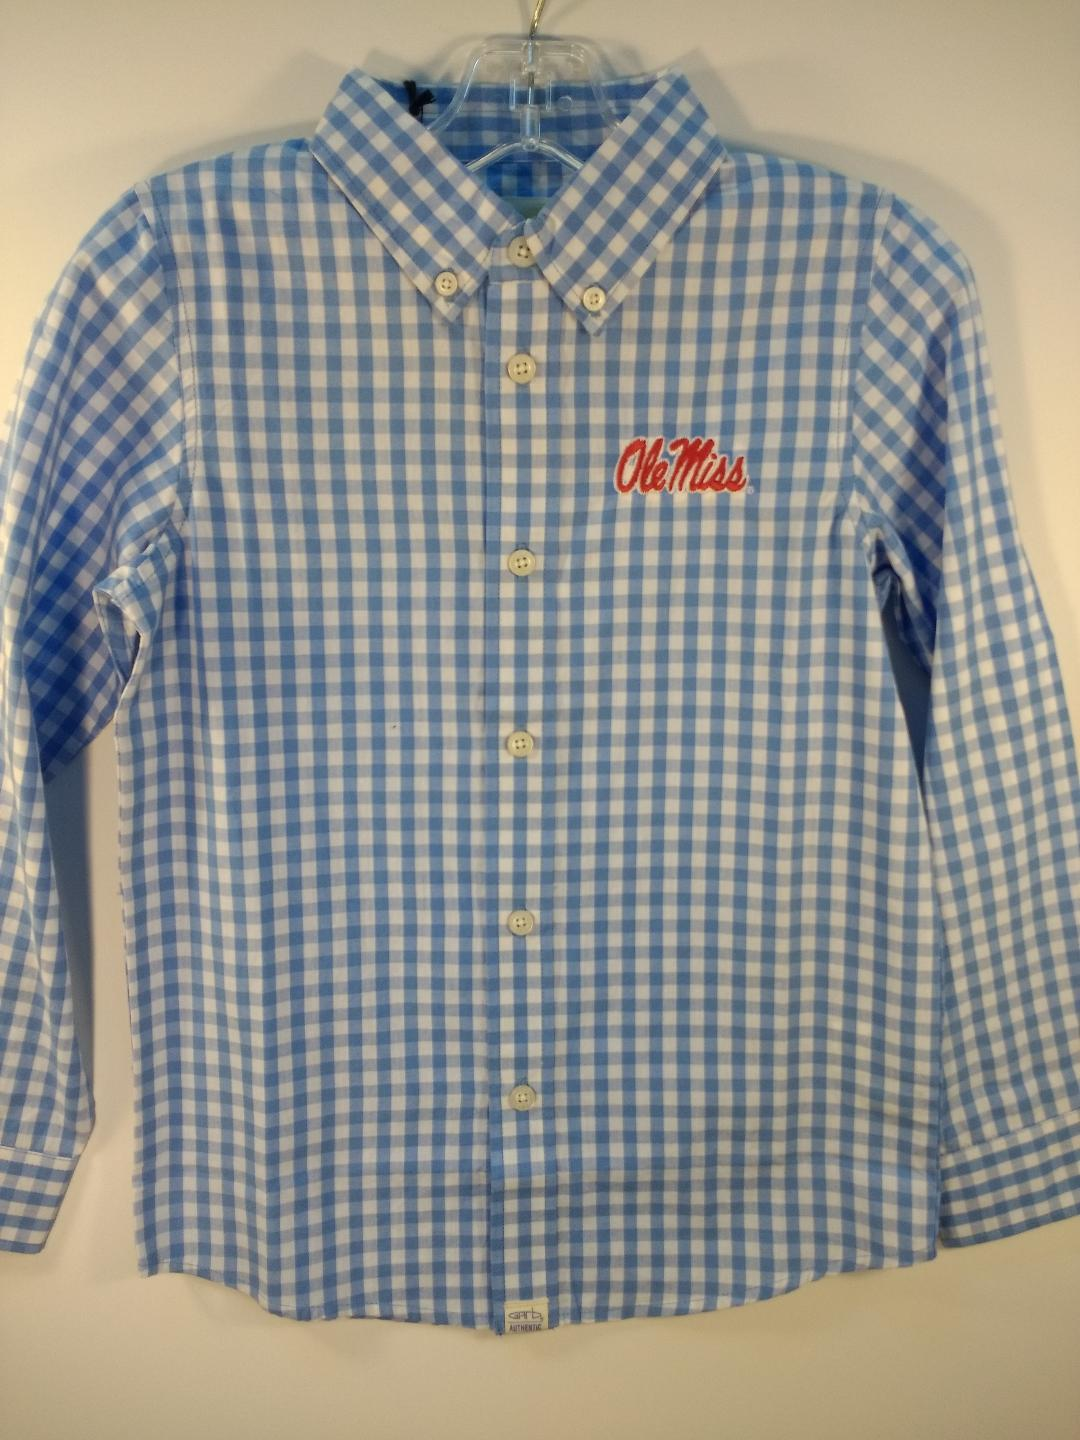 Garb Logan Toddler Carolina Blue Gingham Shirt